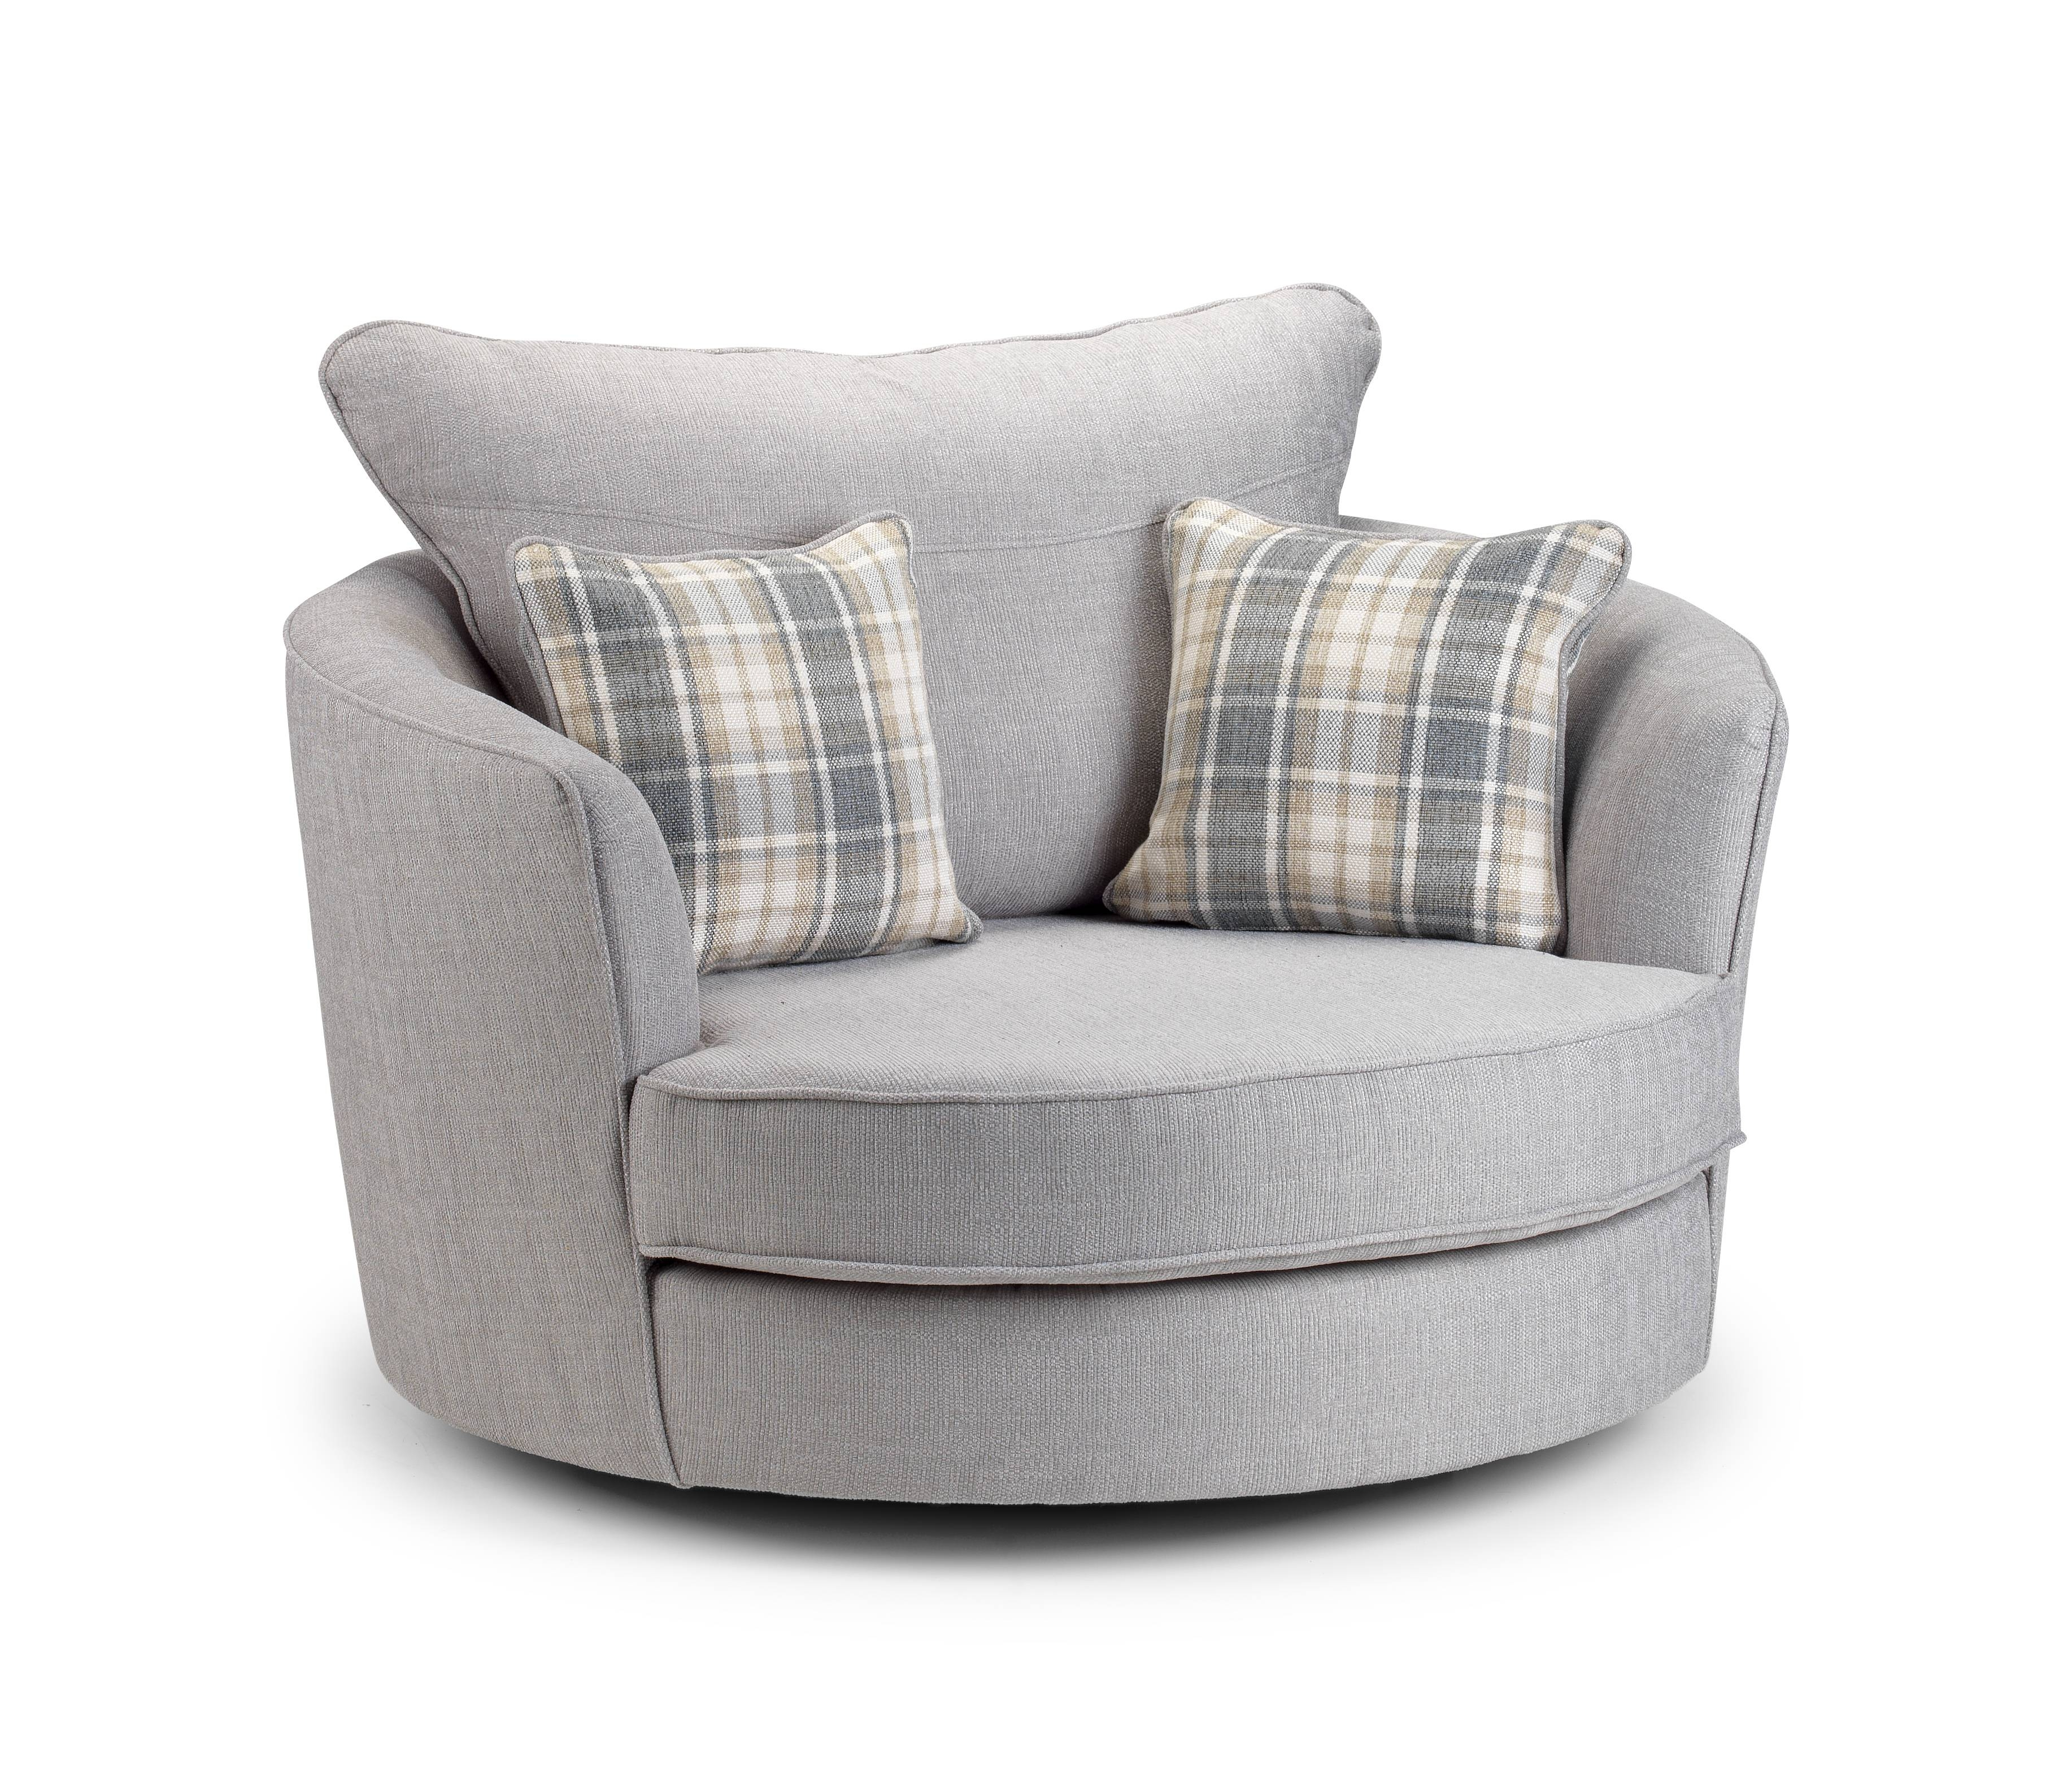 Sofas, Banquet Seats, Furniture, Sofas Chairs, Bespoke, Chairs for Round Sofa Chairs (Image 15 of 15)